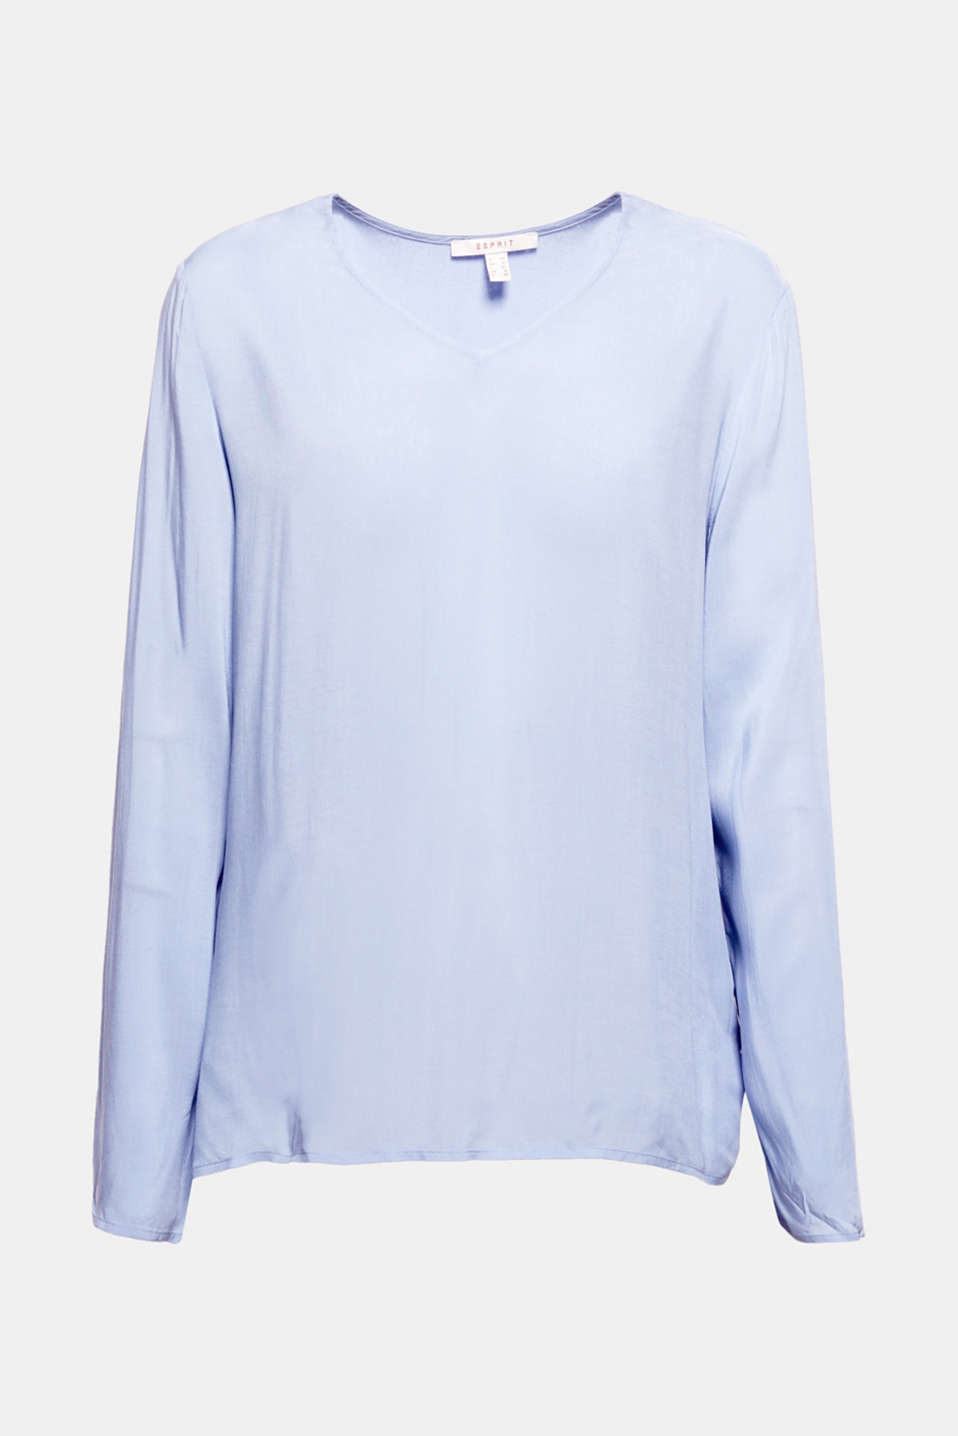 This v-neck long sleeve top in a light combination of materials is snug, flattering and great for creating outfits.